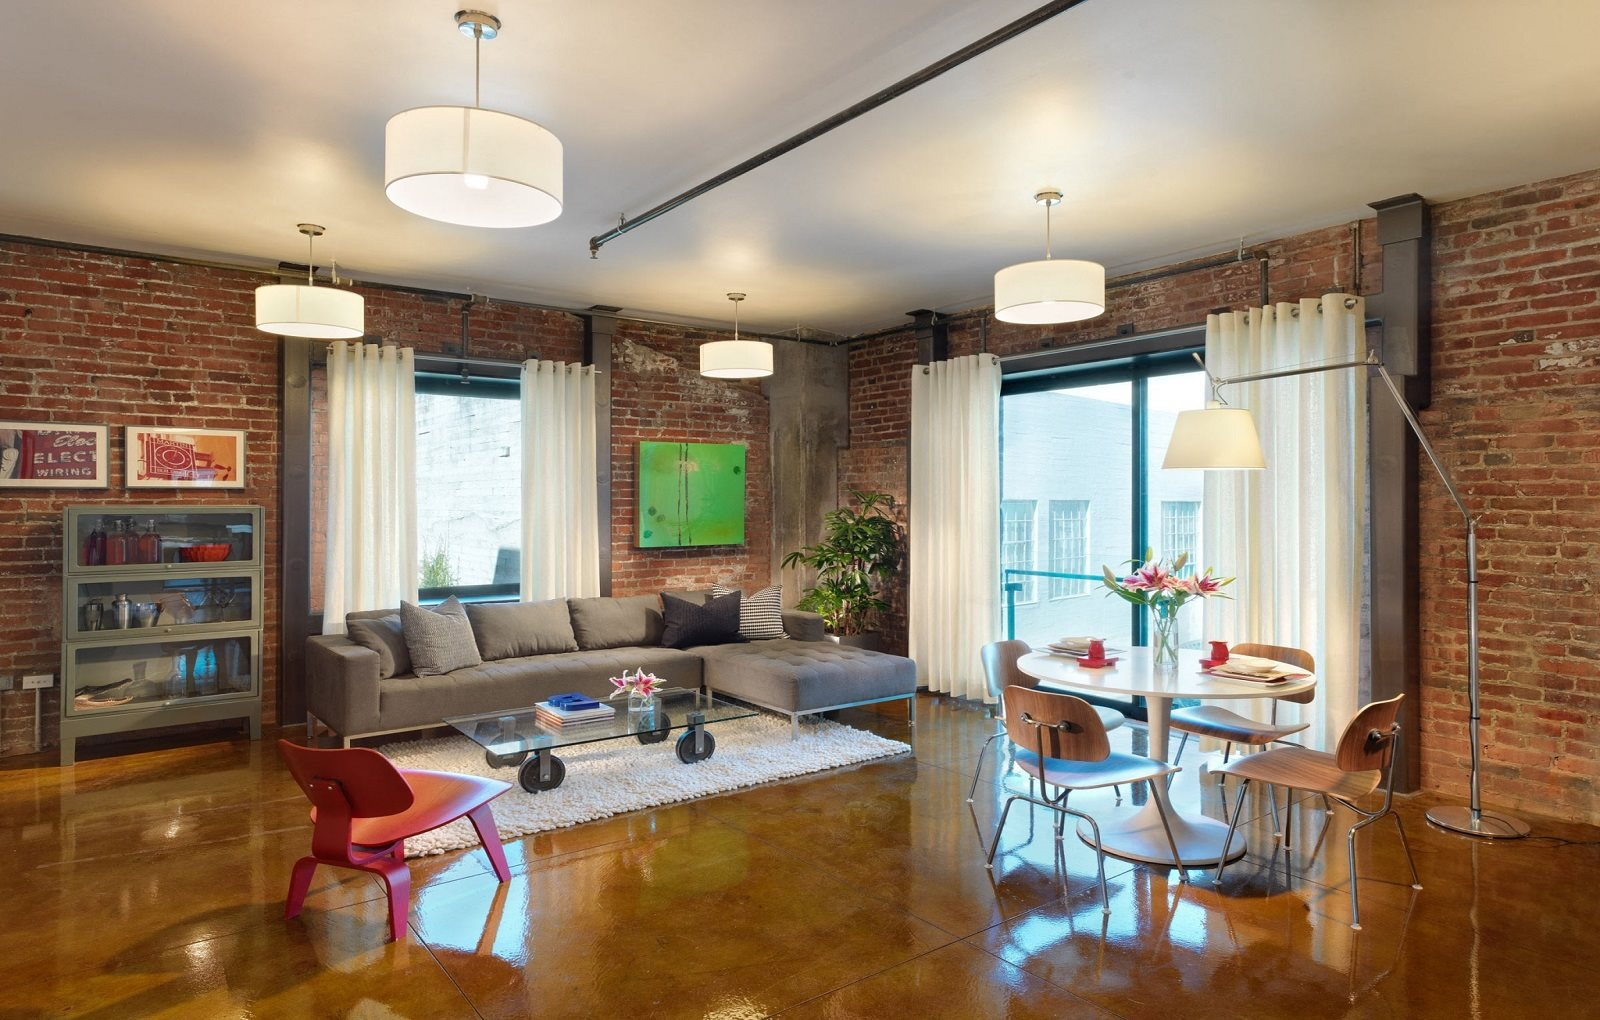 10' Ceilings with Exposed Brick In Many Units at Arc Light, San Francisco, 94107